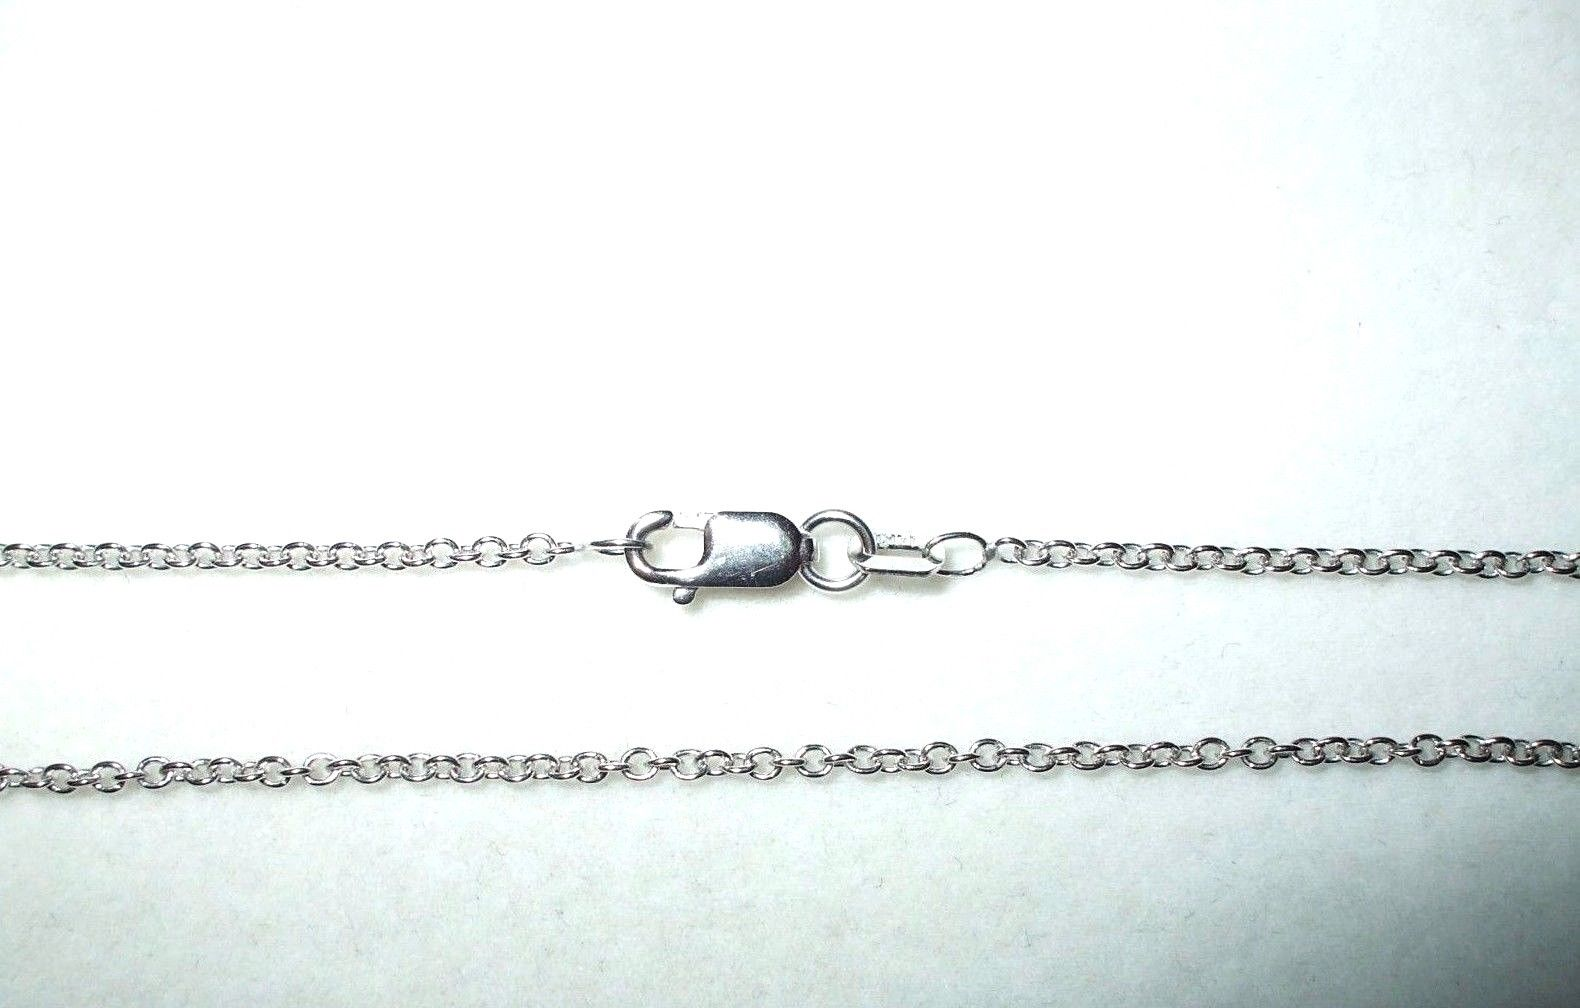 18 inch 14K white gold cable chain with lobster clasp 2.5 grams 0.9 mm $350